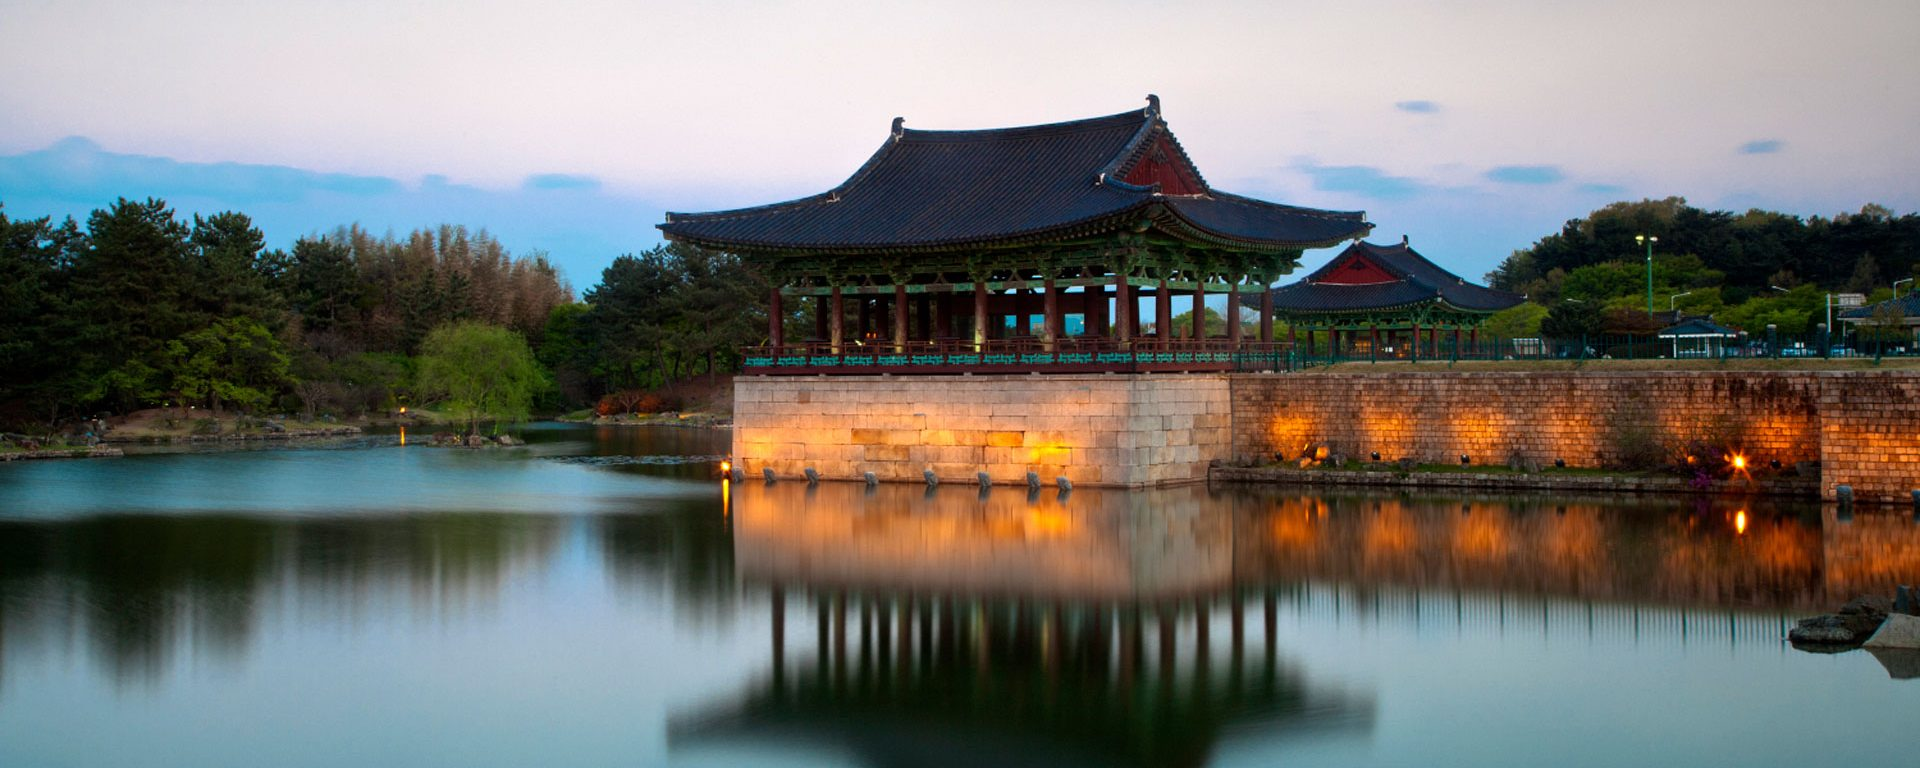 Donggung Palace and Anapji Pond in Gyeongju, South Korea